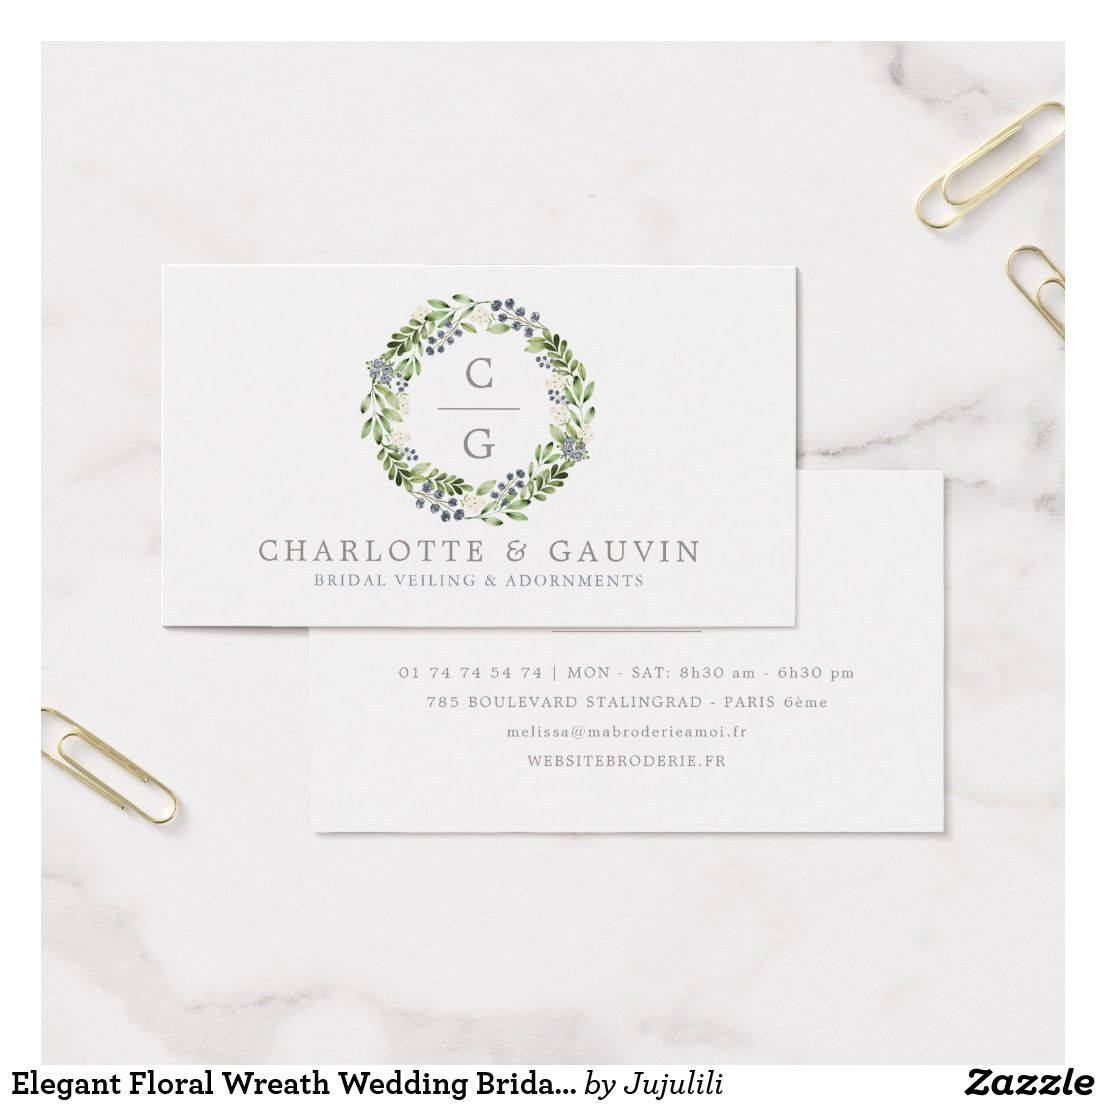 Elegant Floral Wreath Wedding Bridal Fashion Business Card  Wedding